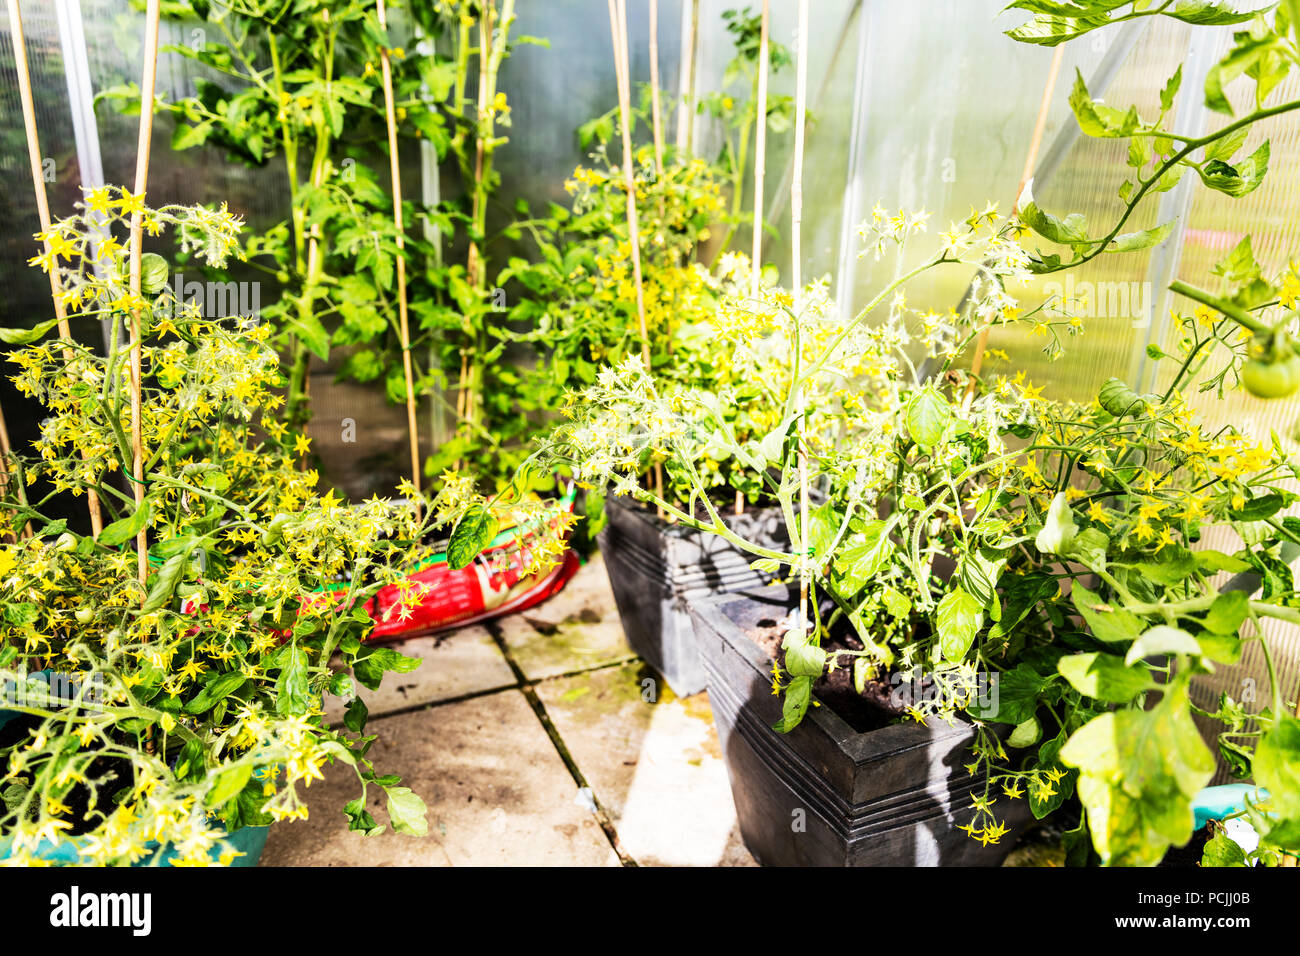 Tomato Plants Growing Tomatoes Greenhouse Tomatoes Green